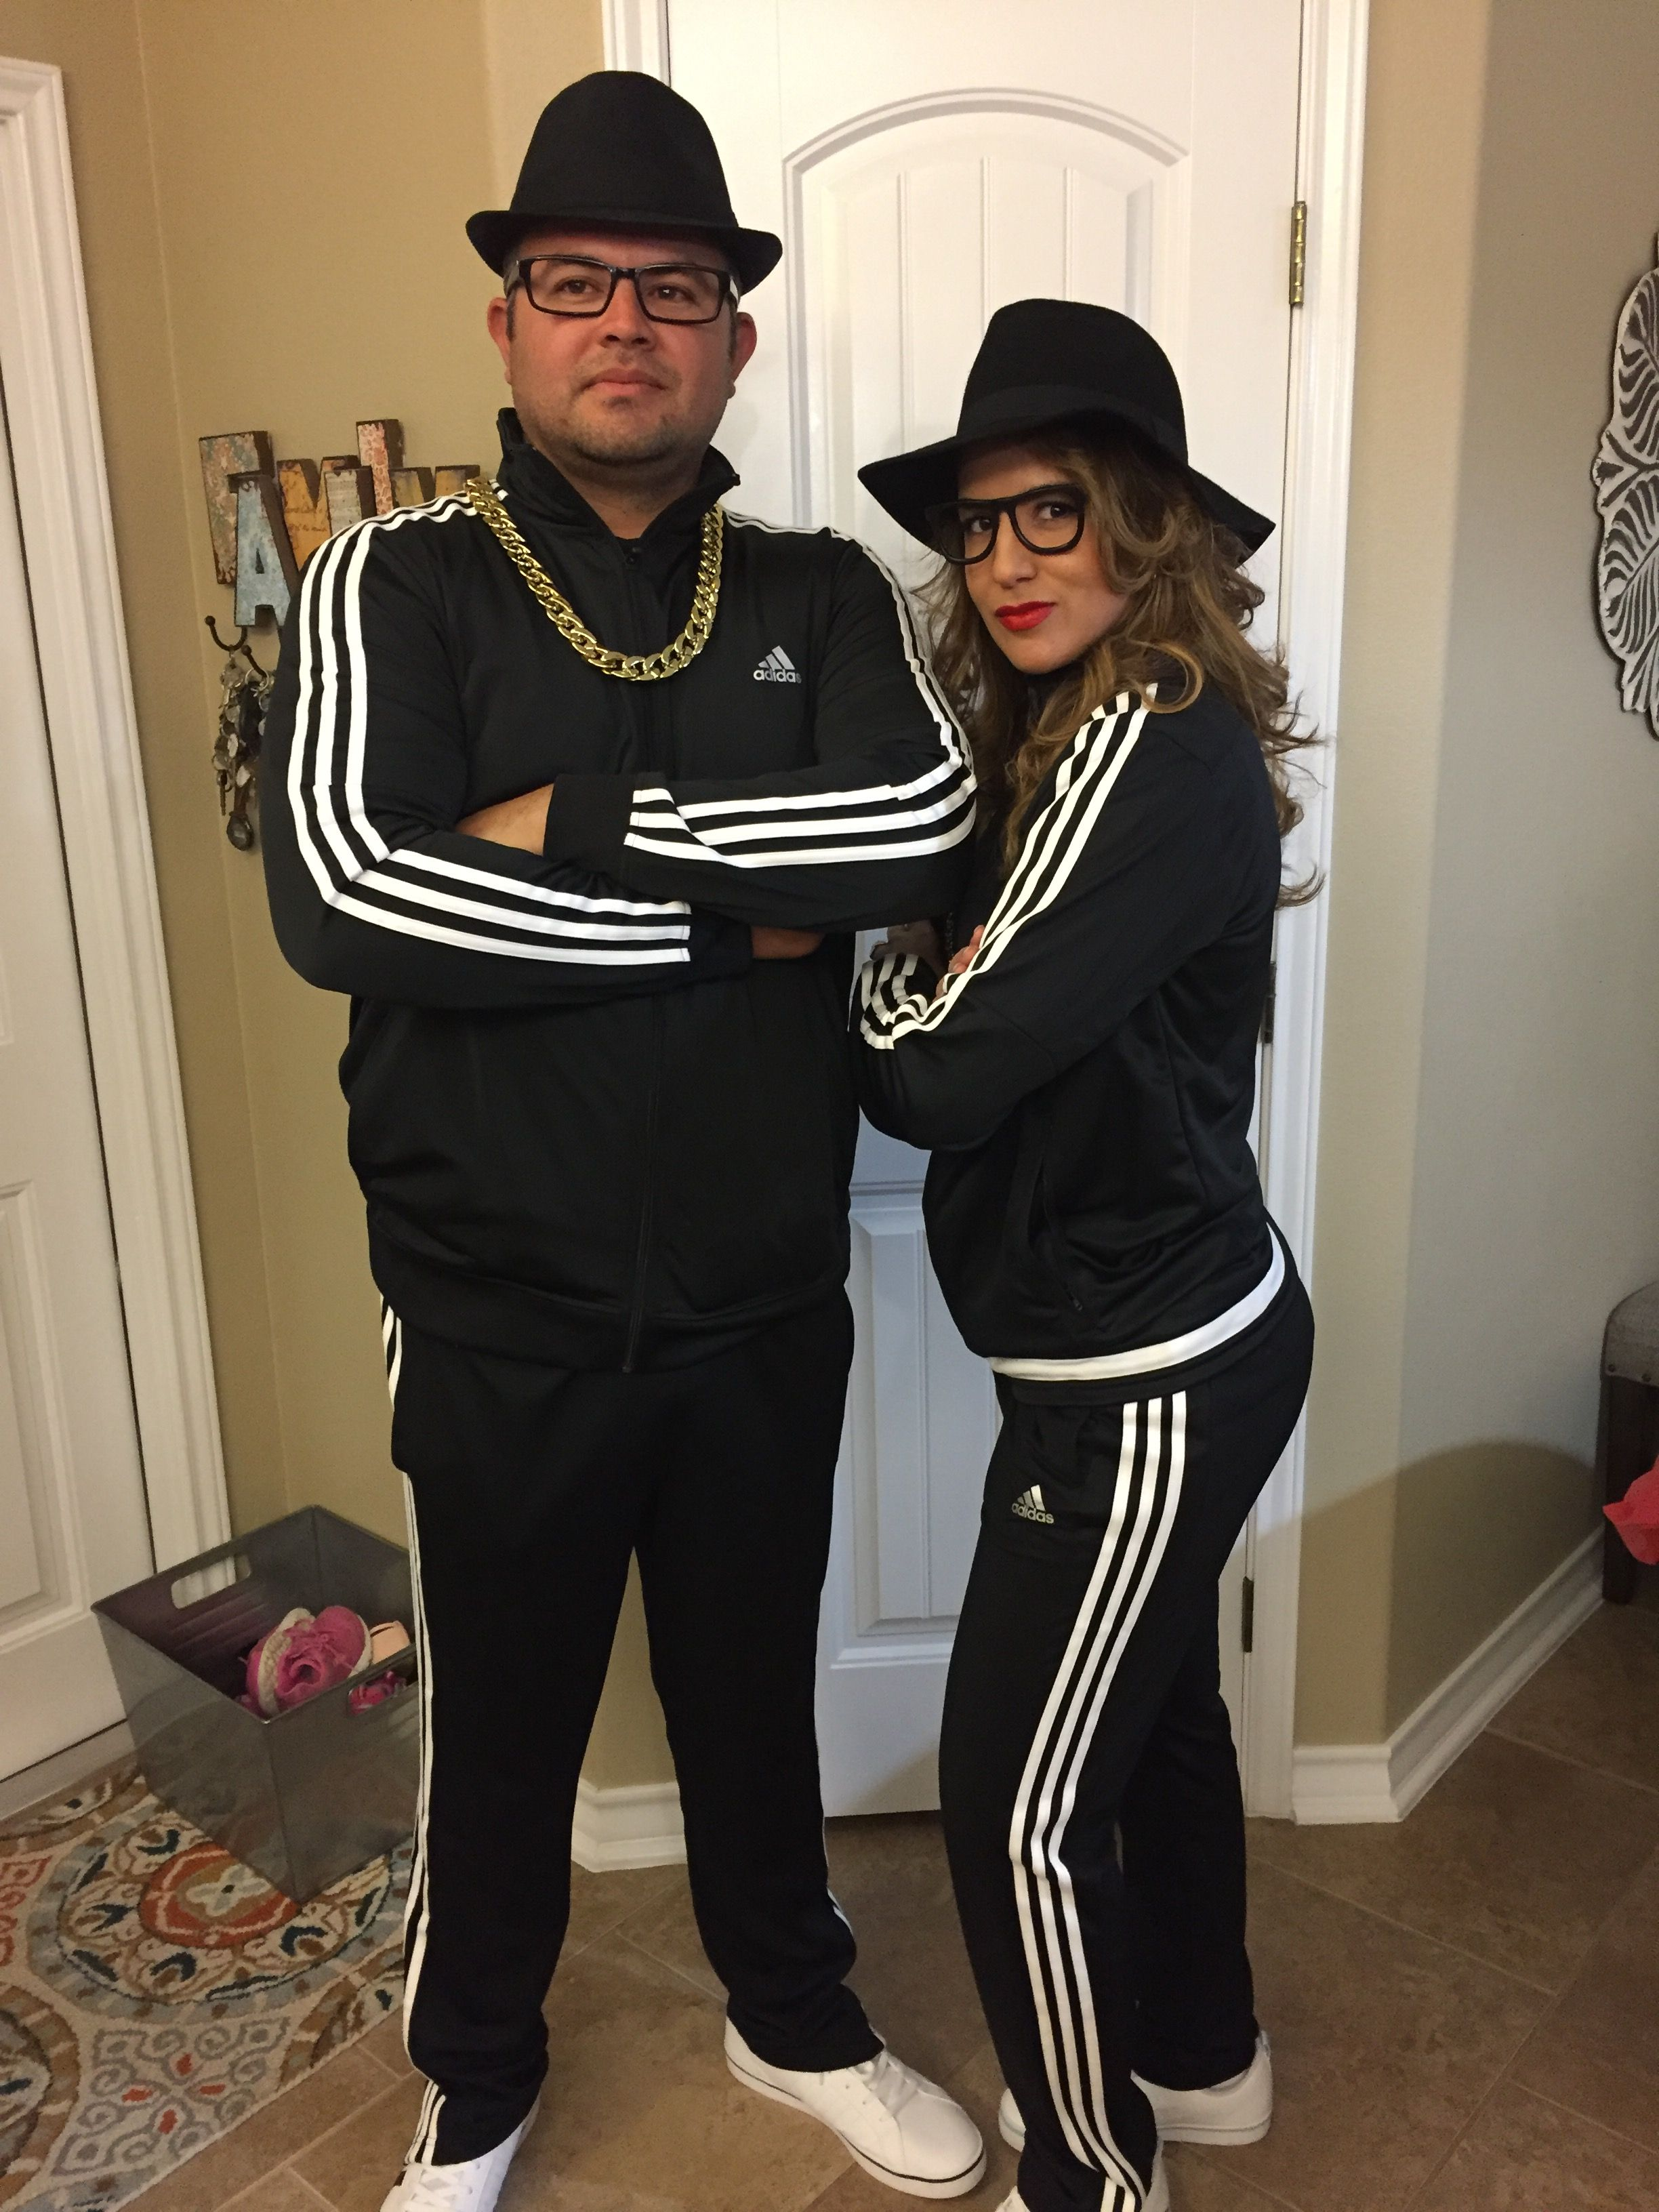 80s theme party. Run DMC